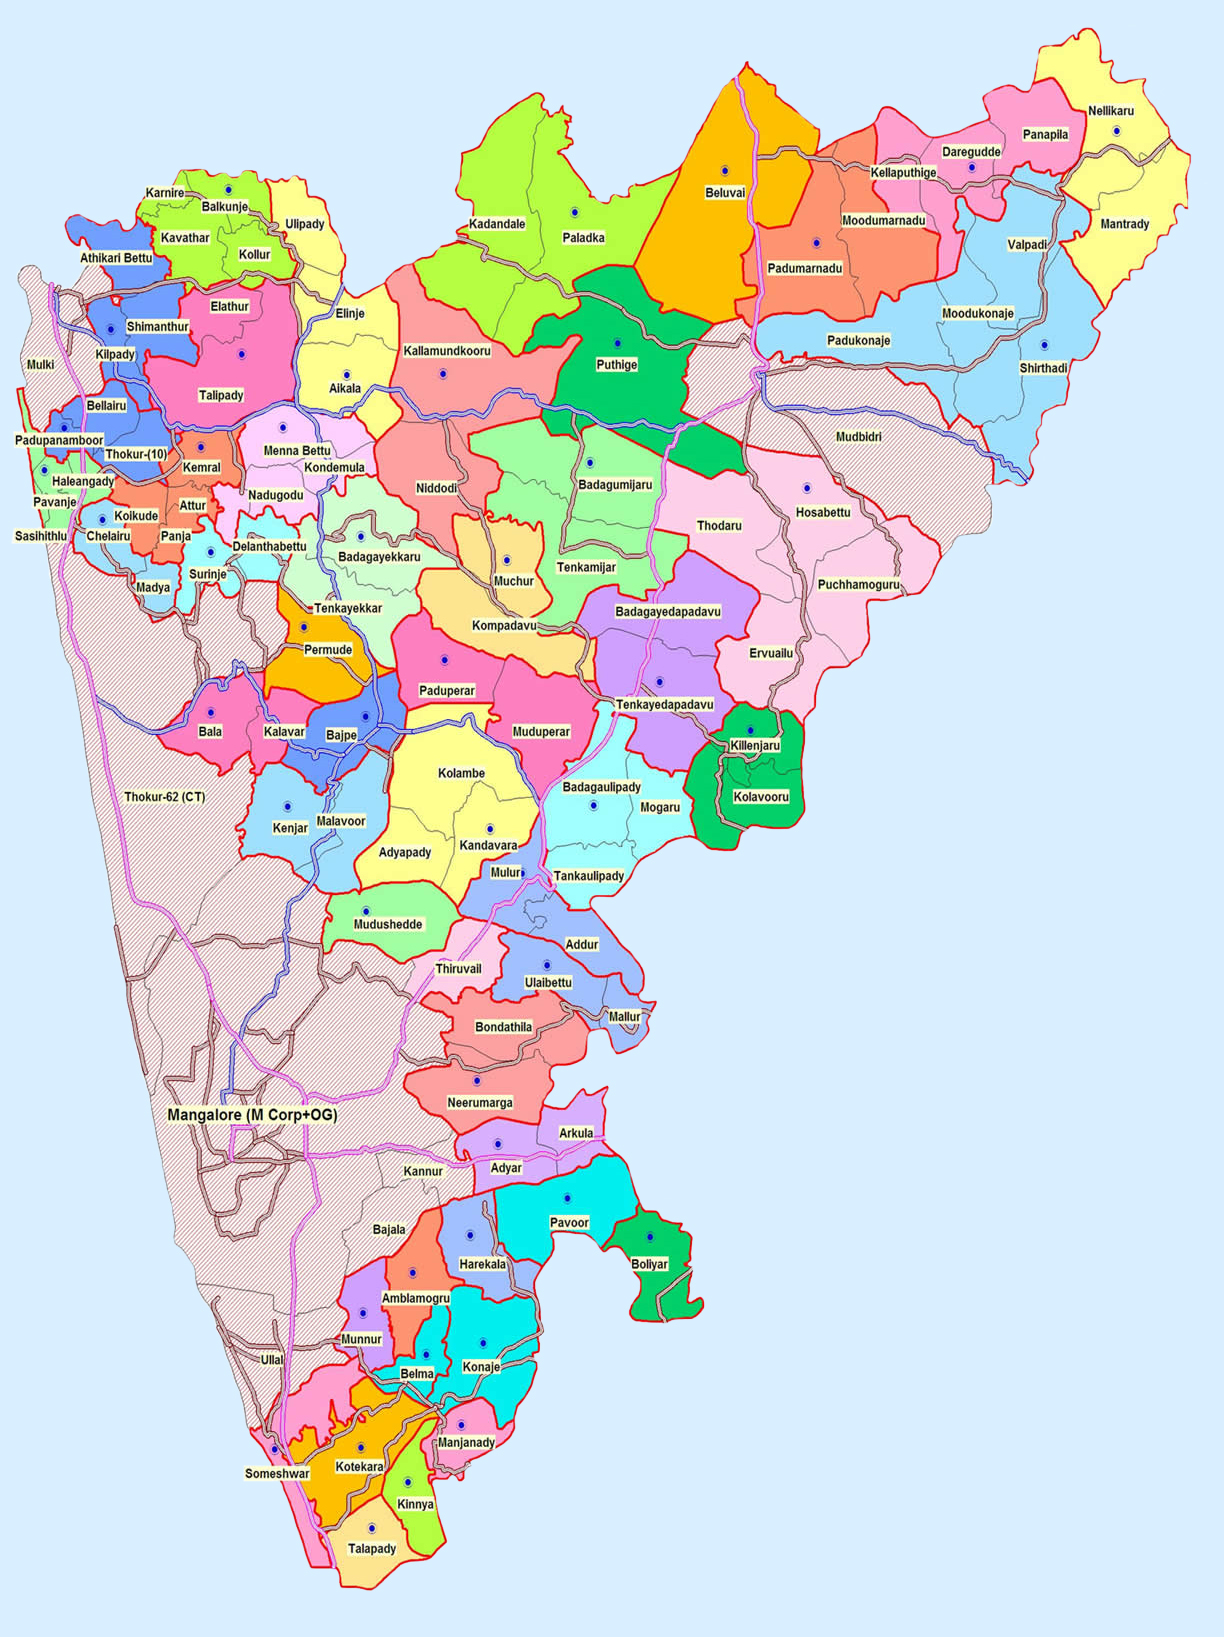 Map of Mangalore